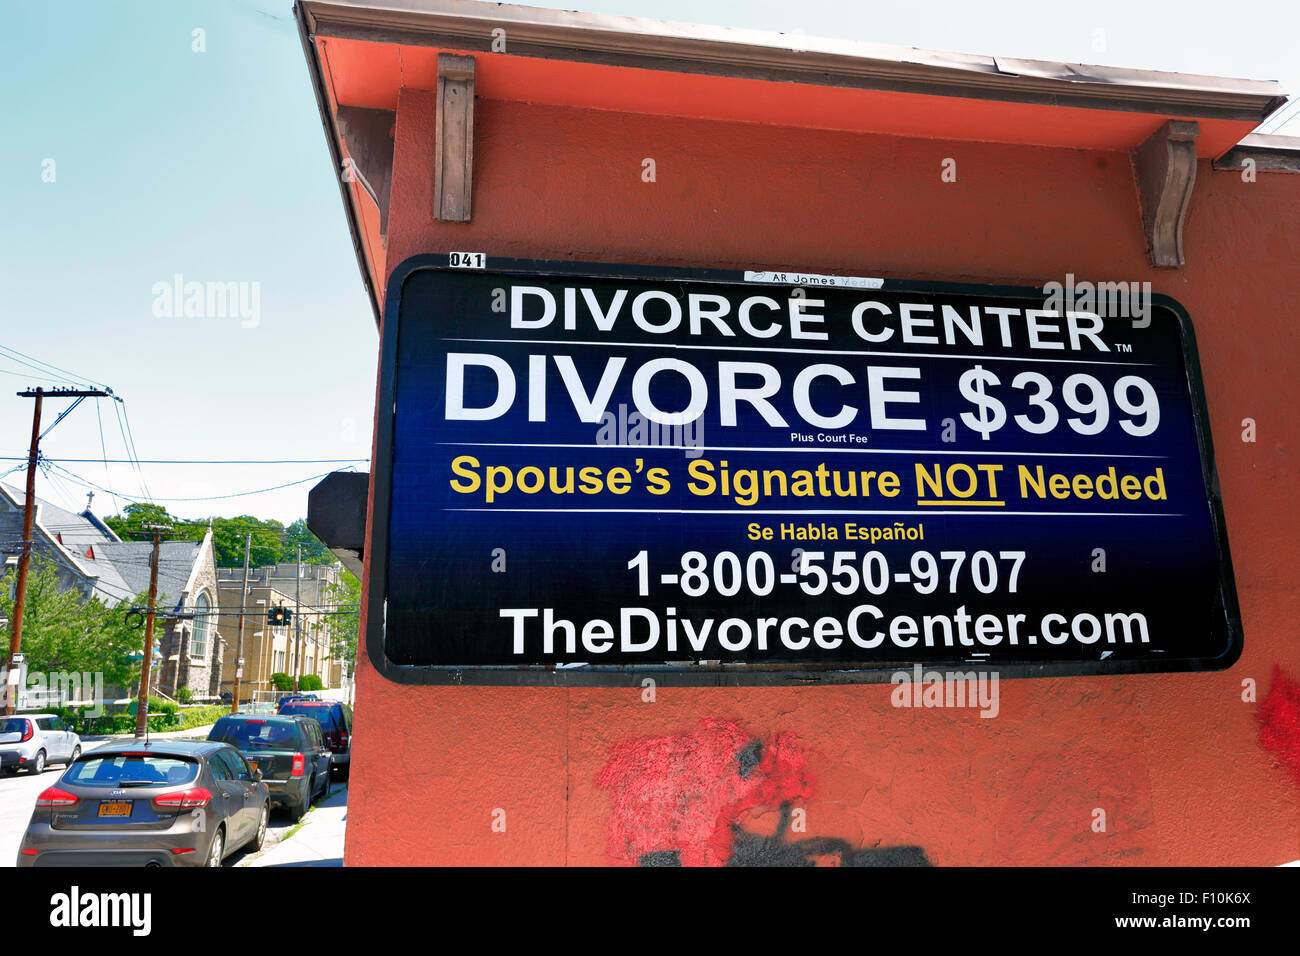 Divorce center Yonkers New York - Stock Image